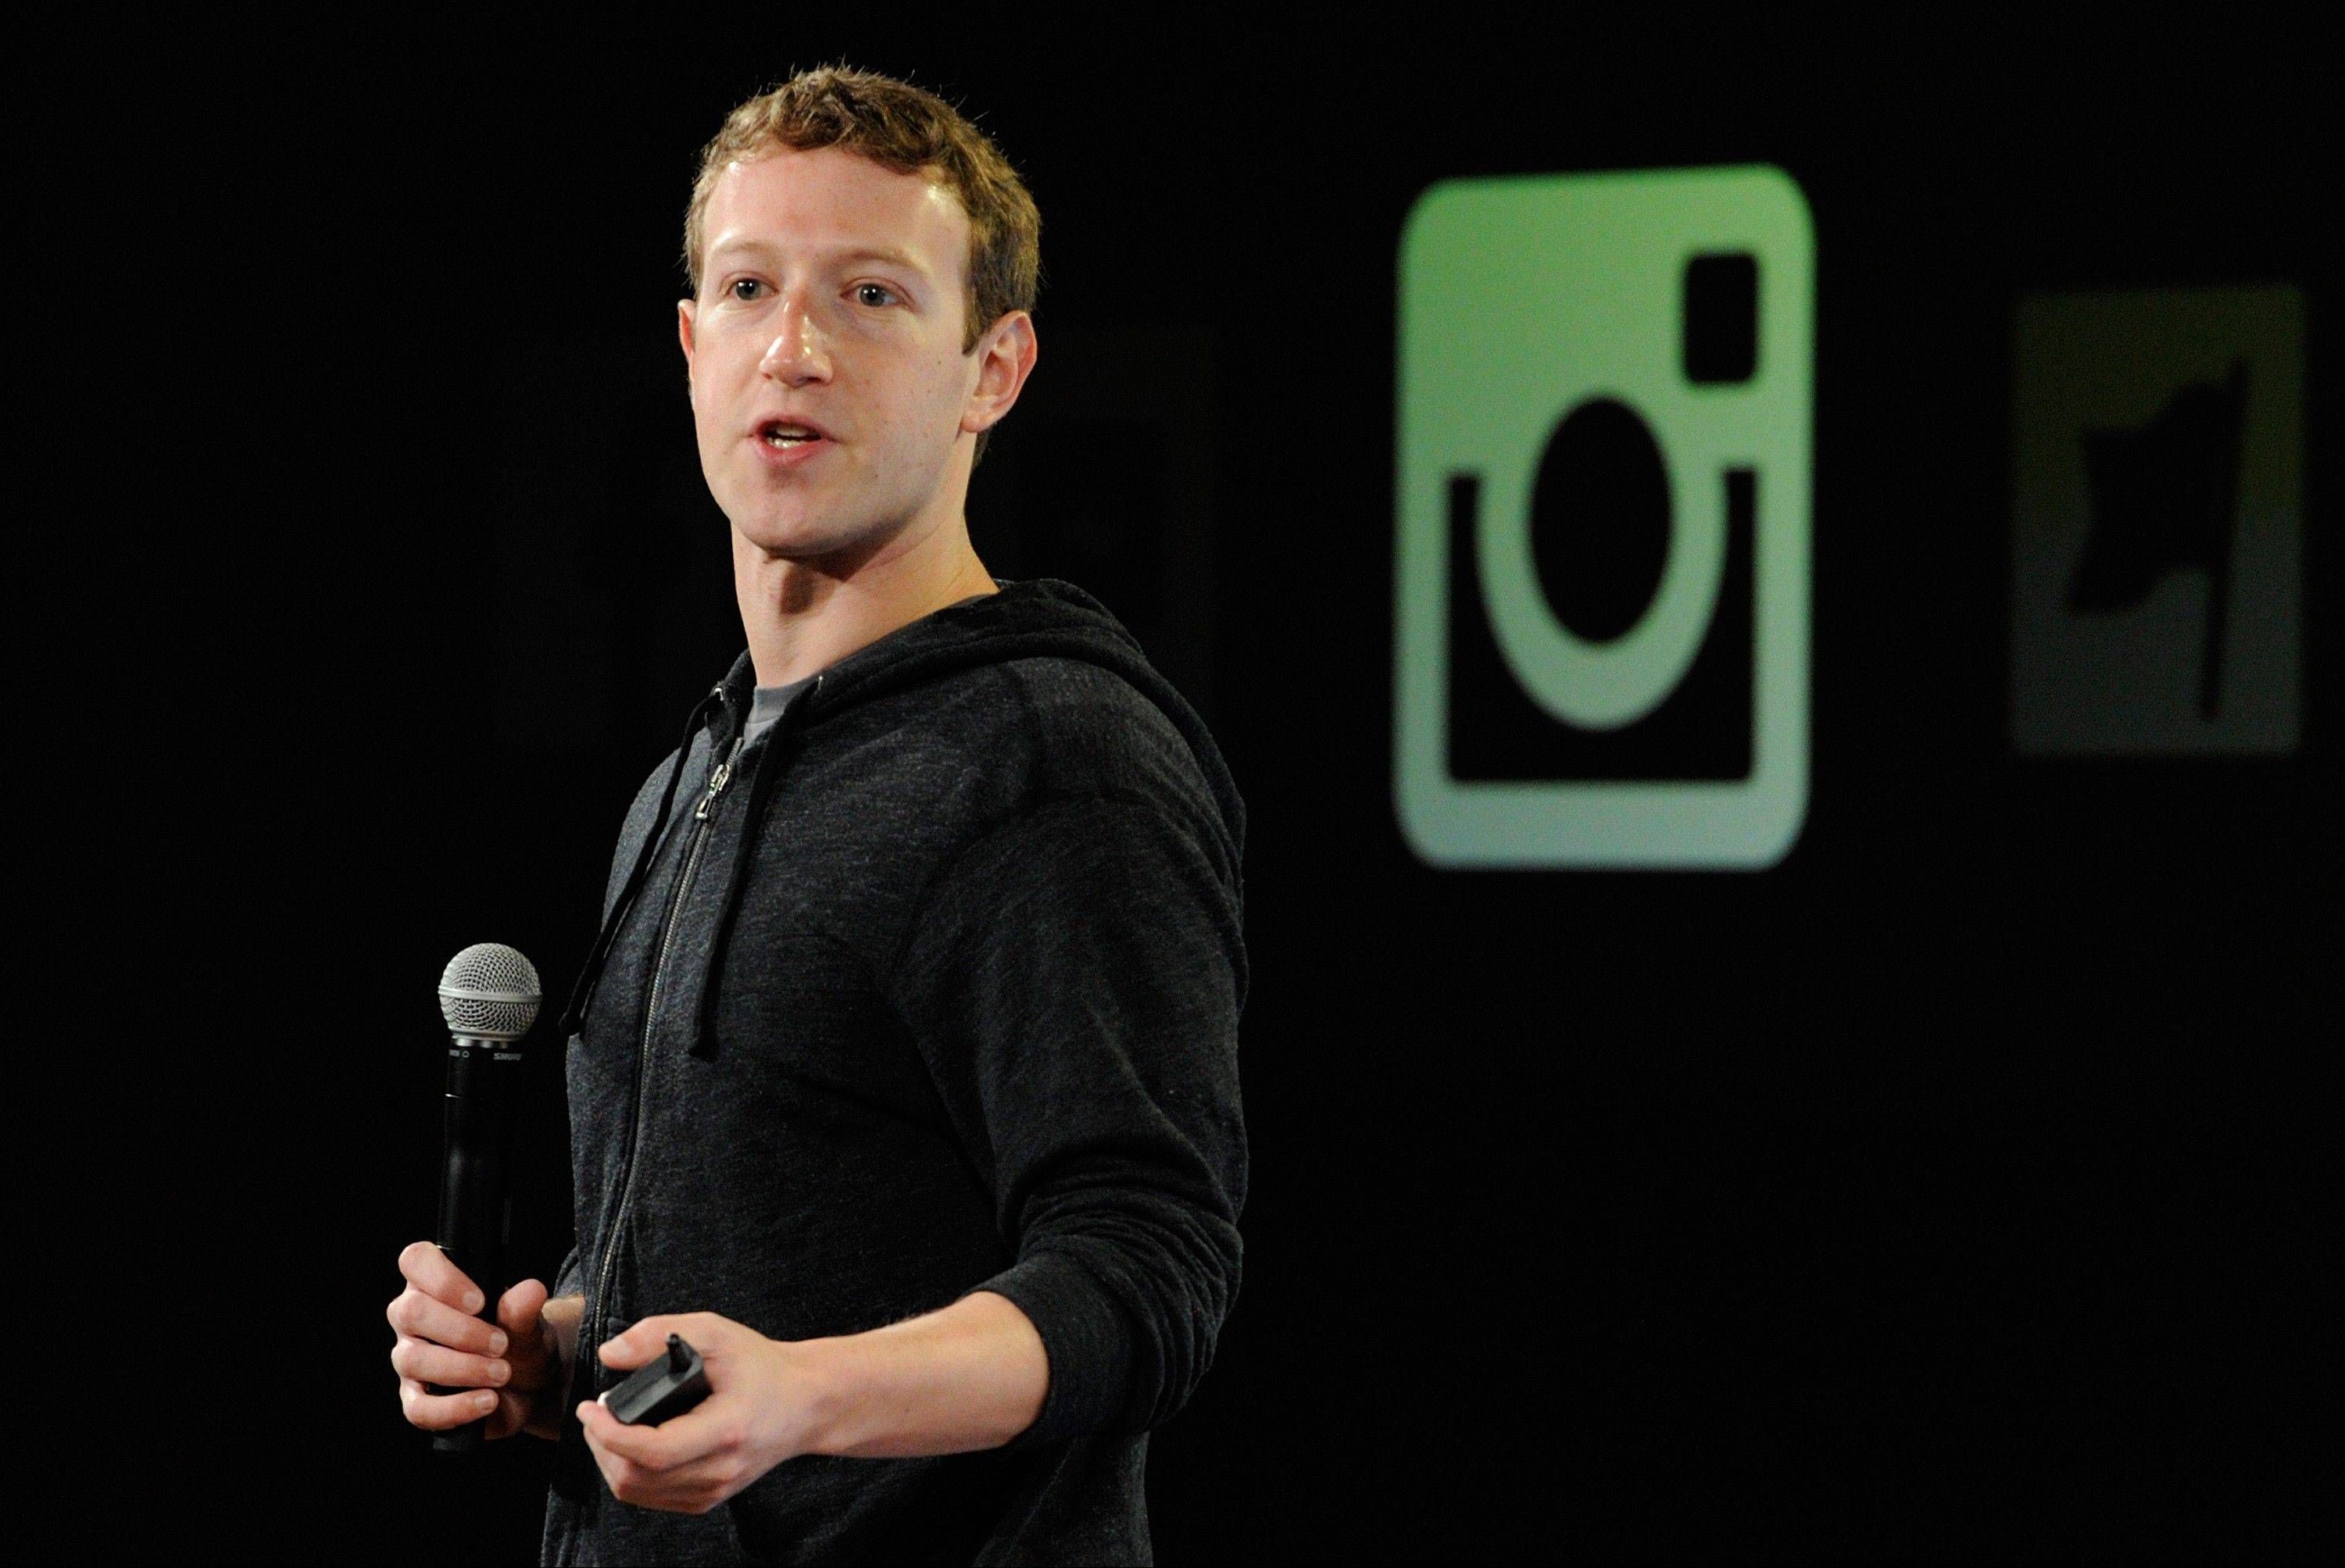 The U.S. government �really blew it� on conducting surveillance programs that riled foreign leaders and domestic skeptics, Facebook Inc. Chief Executive Officer Mark Zuckerberg said in a television interview.